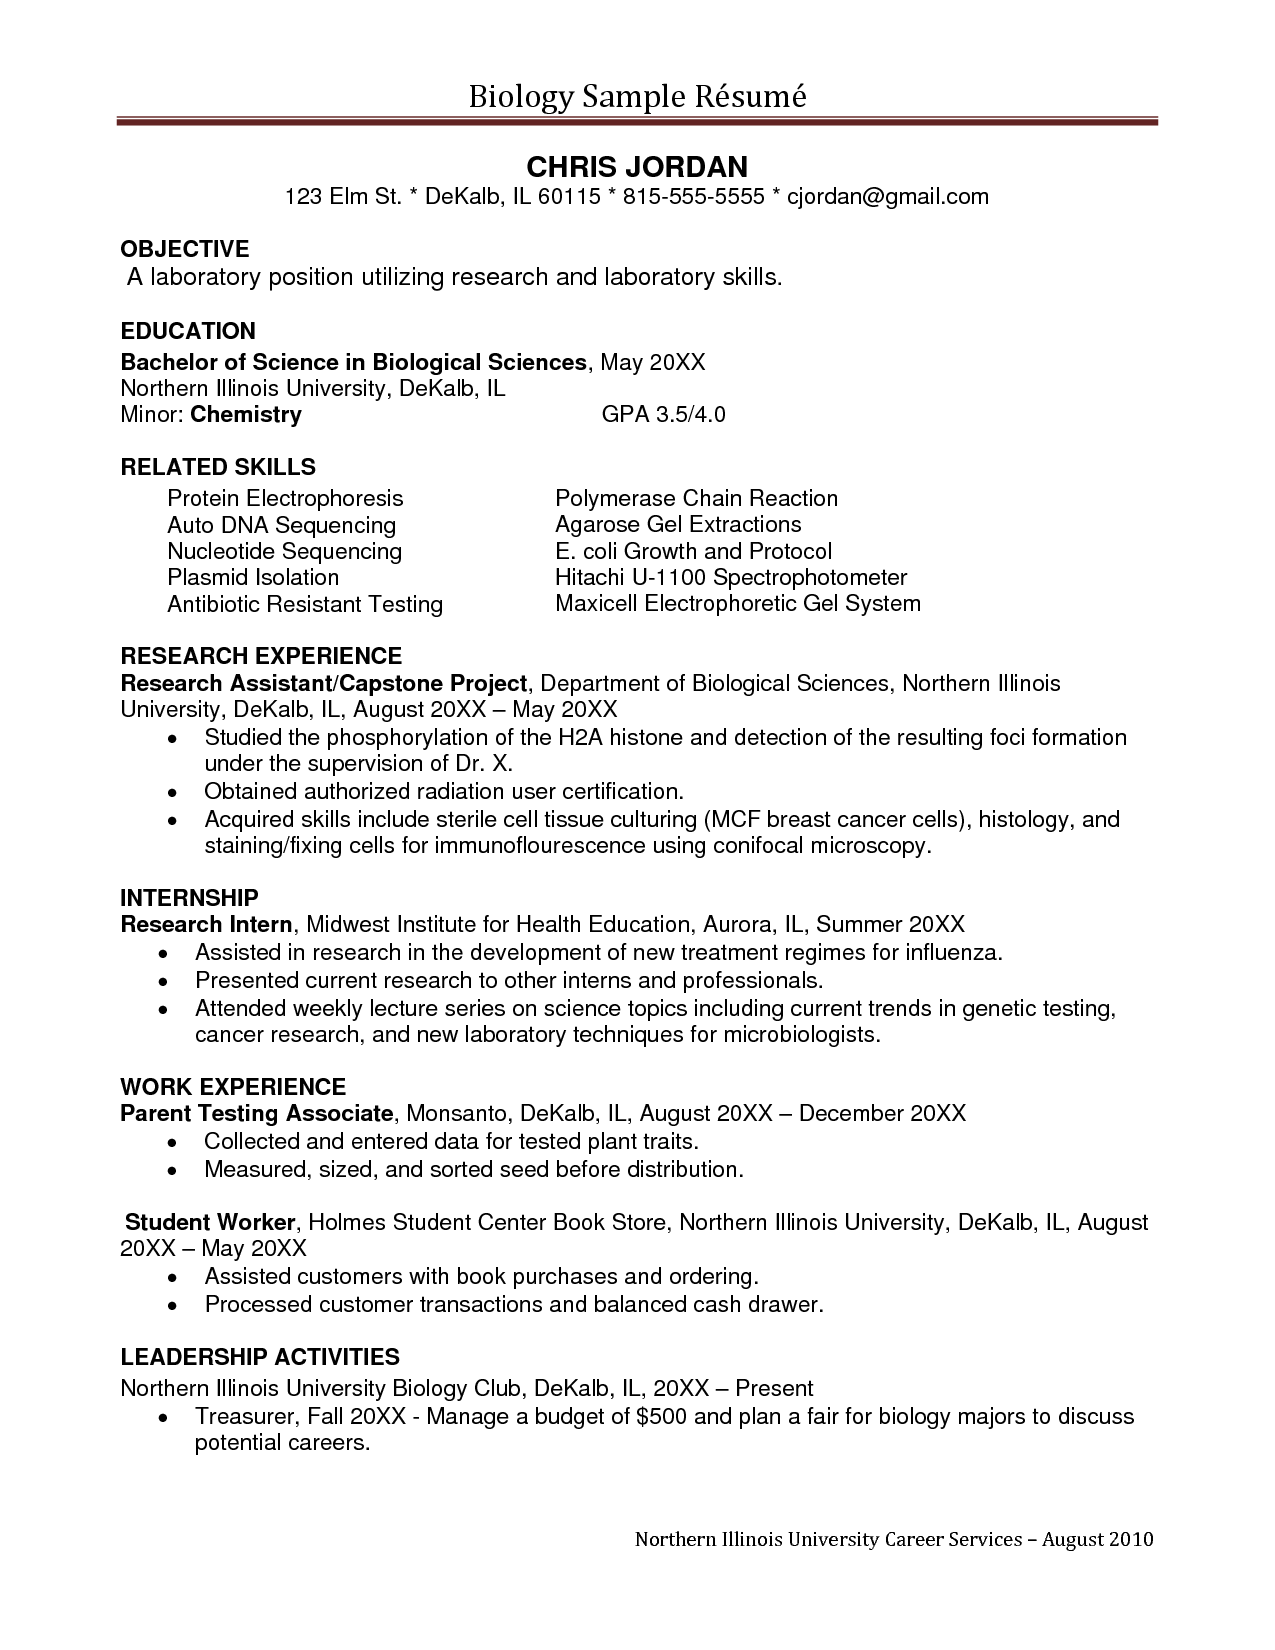 Objectives For Resume Sample Undergraduate Research Assistant Resume Sampleĺ